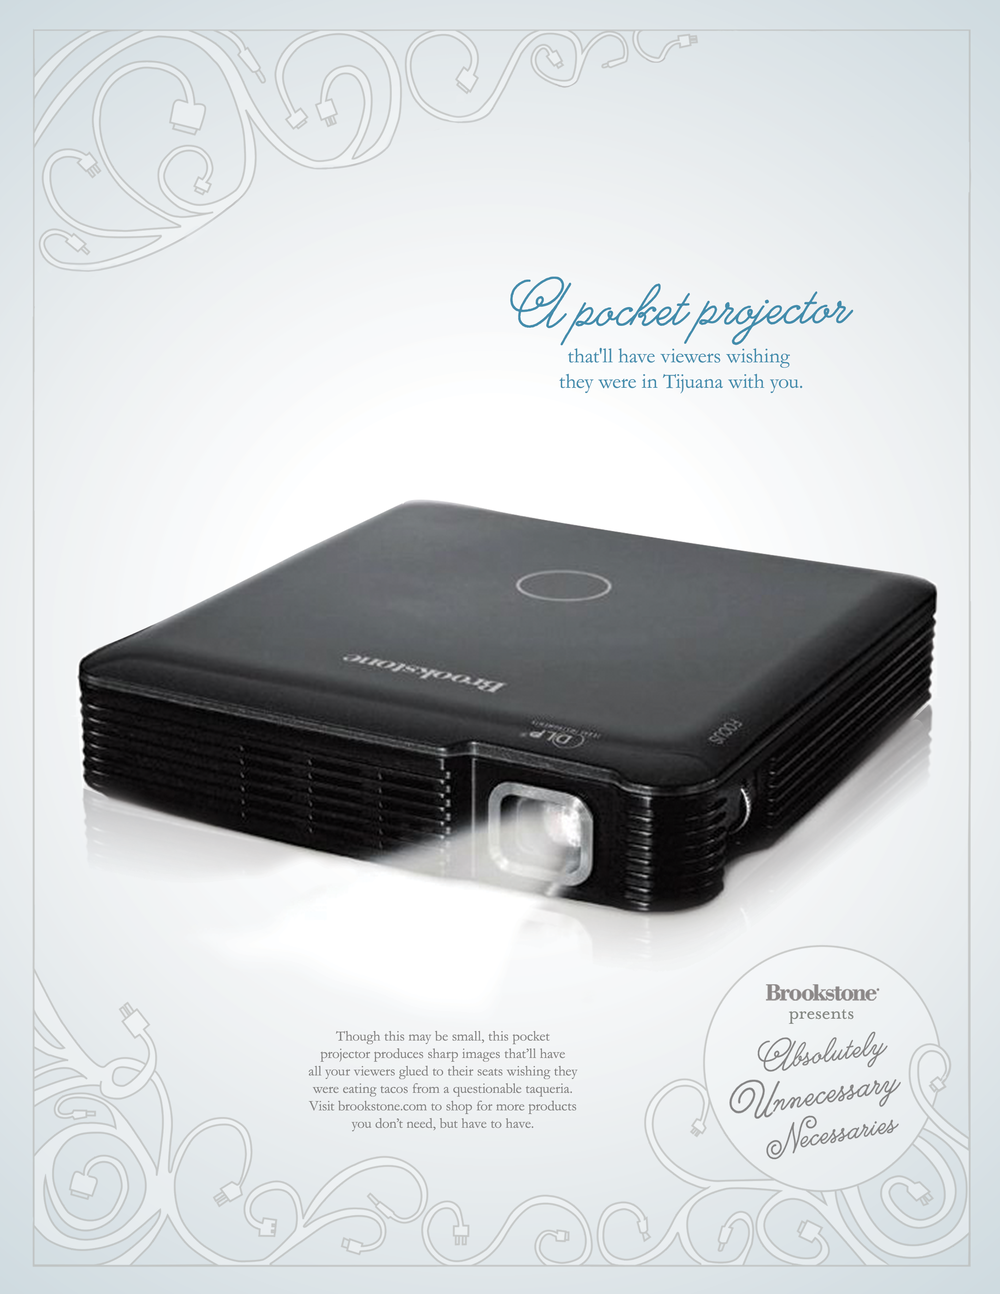 Brookstone-newProjector.png